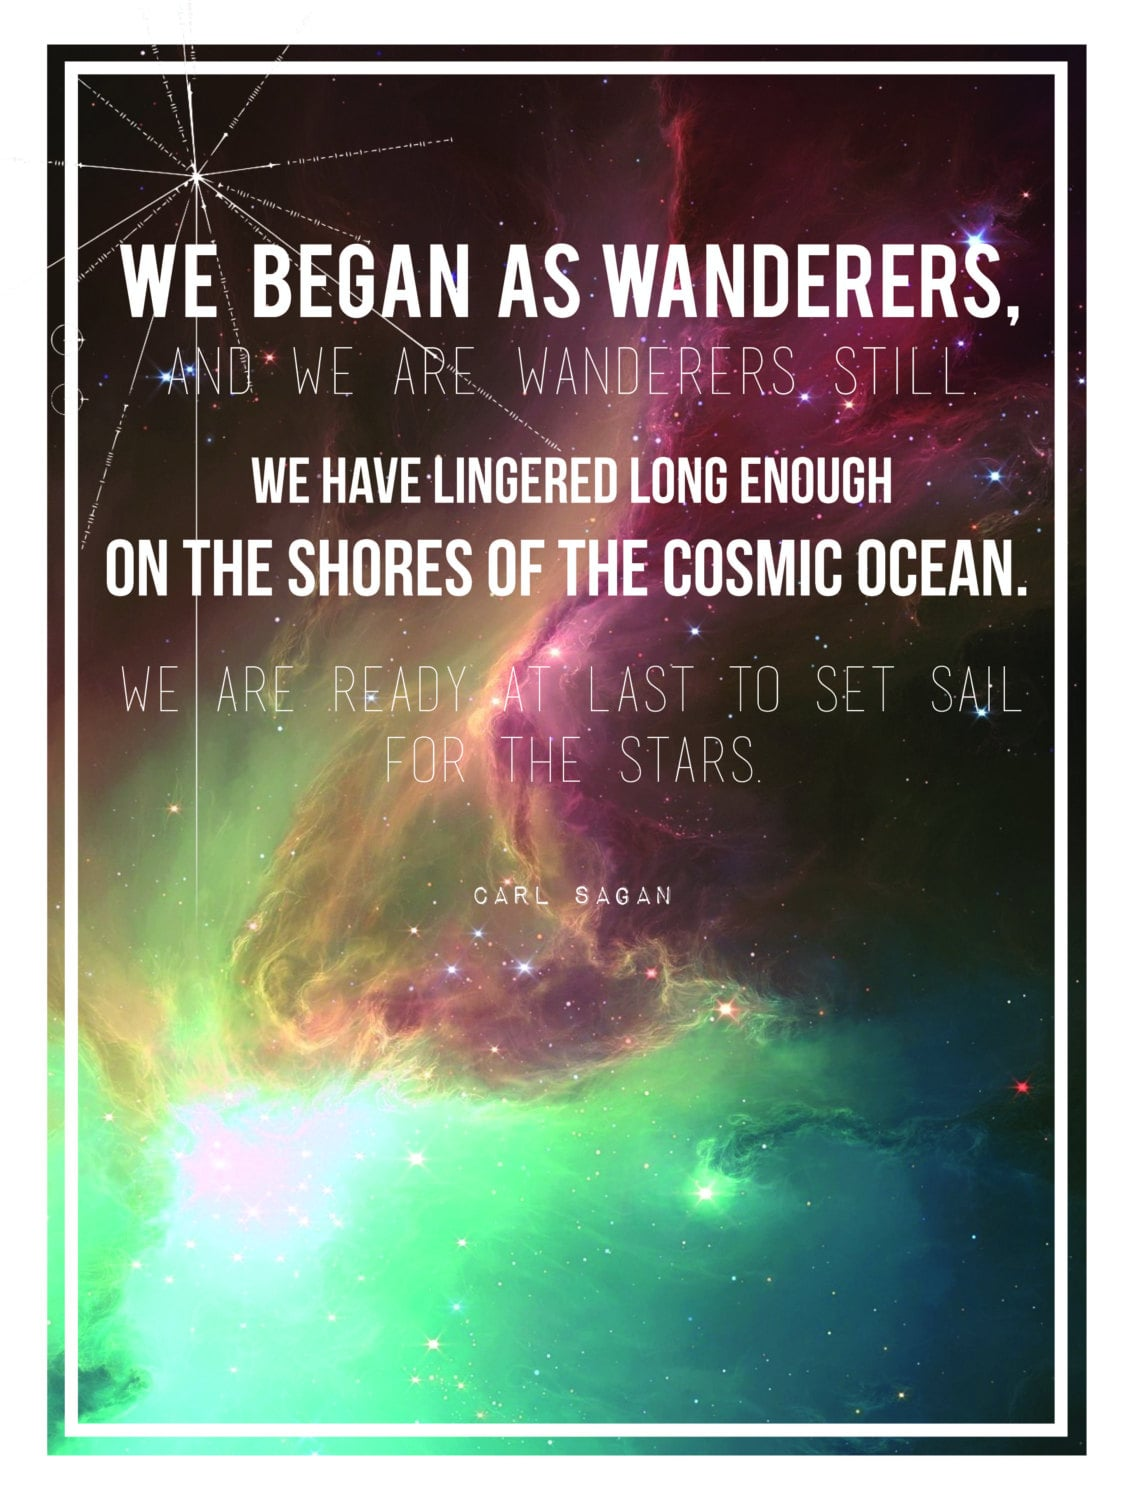 """""""We began as wanderers, and we are wanderers still. We have lingered long enough on the shores of the cosmic ocean. We are ready at last to set sail for the stars."""" The longer version of Carl's """"wanders quote"""" is set against a galactic background in this poster by Etsy user Sea and Silva."""